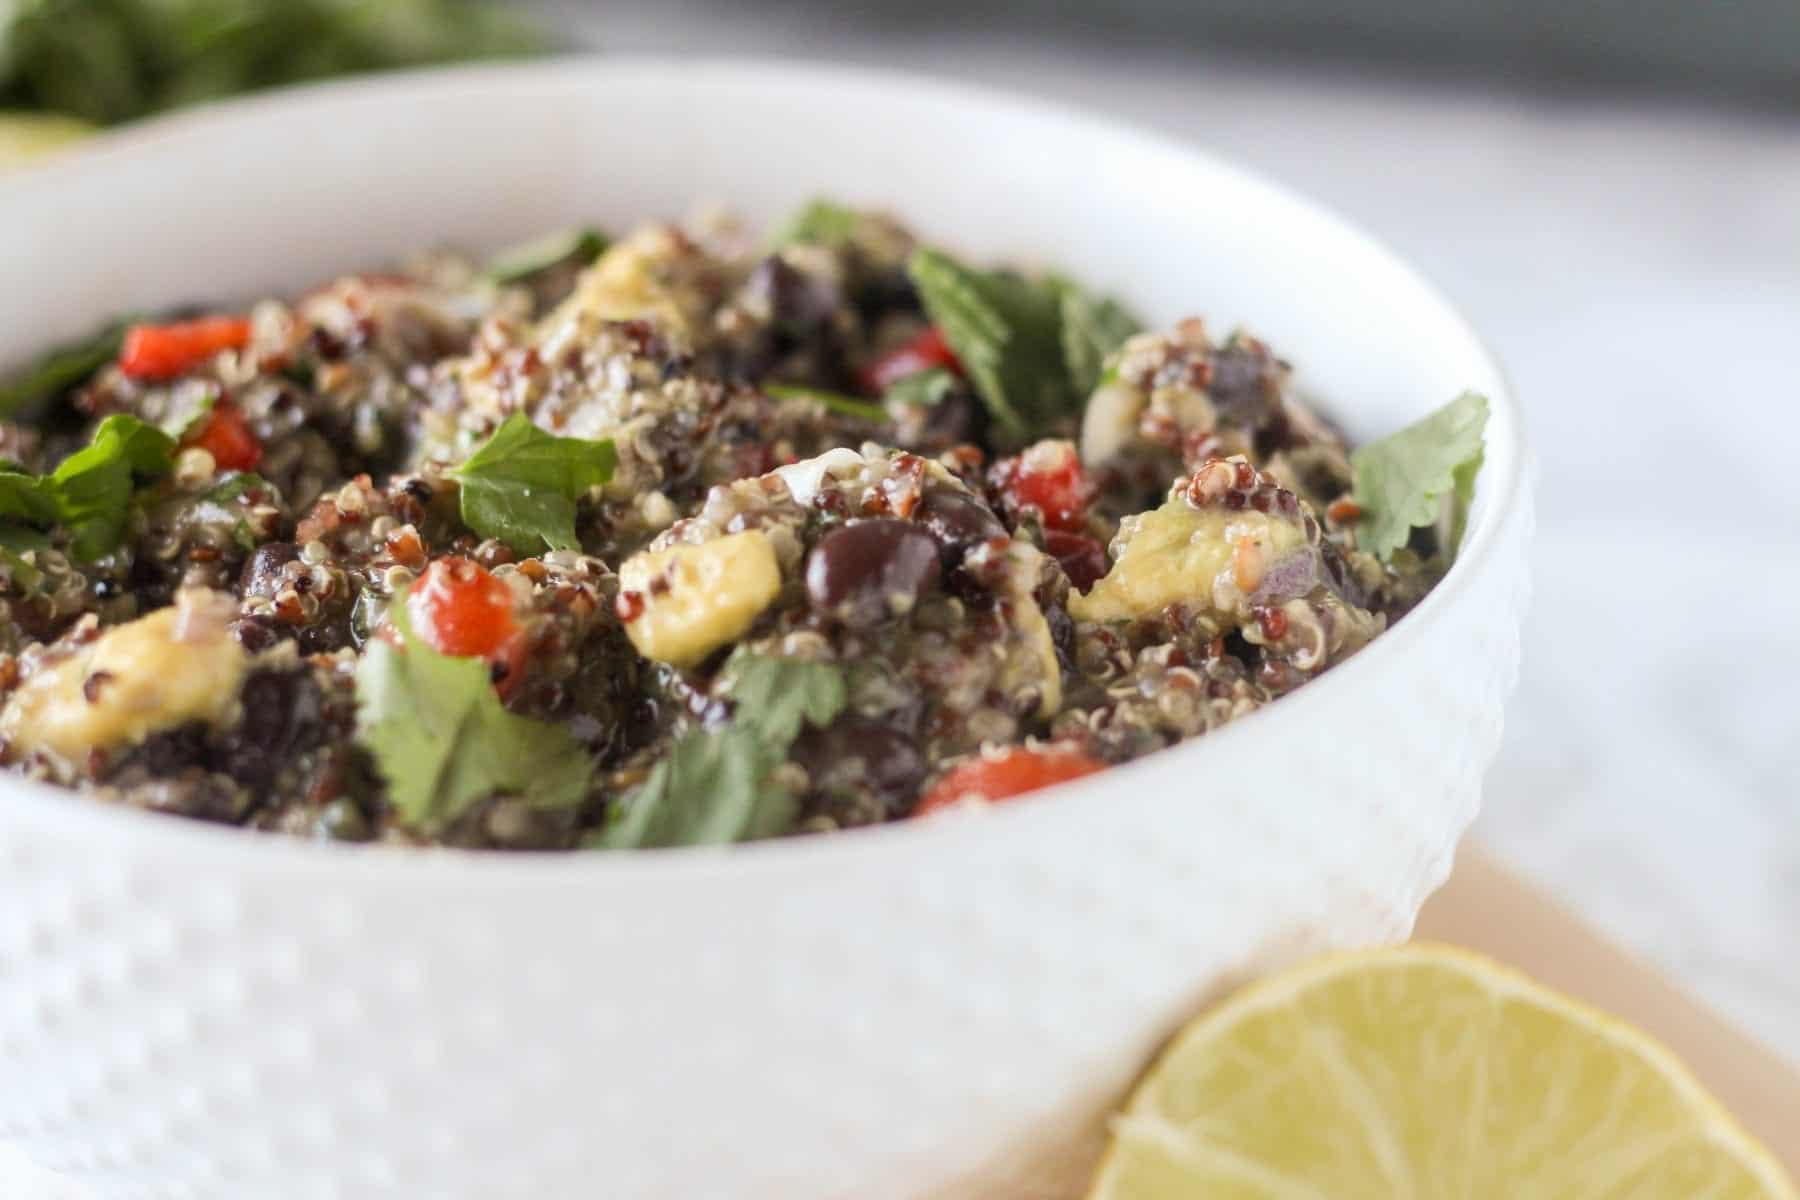 This Southwest Black Bean and Avocado Quinoa Salad combines quinoa, black beans, tomatoes, red onions, avocado and cilantro with a zesty three-ingredient lime dressing. Serve it warm or chilled. This one is great as a healthy side dish for barbecues!